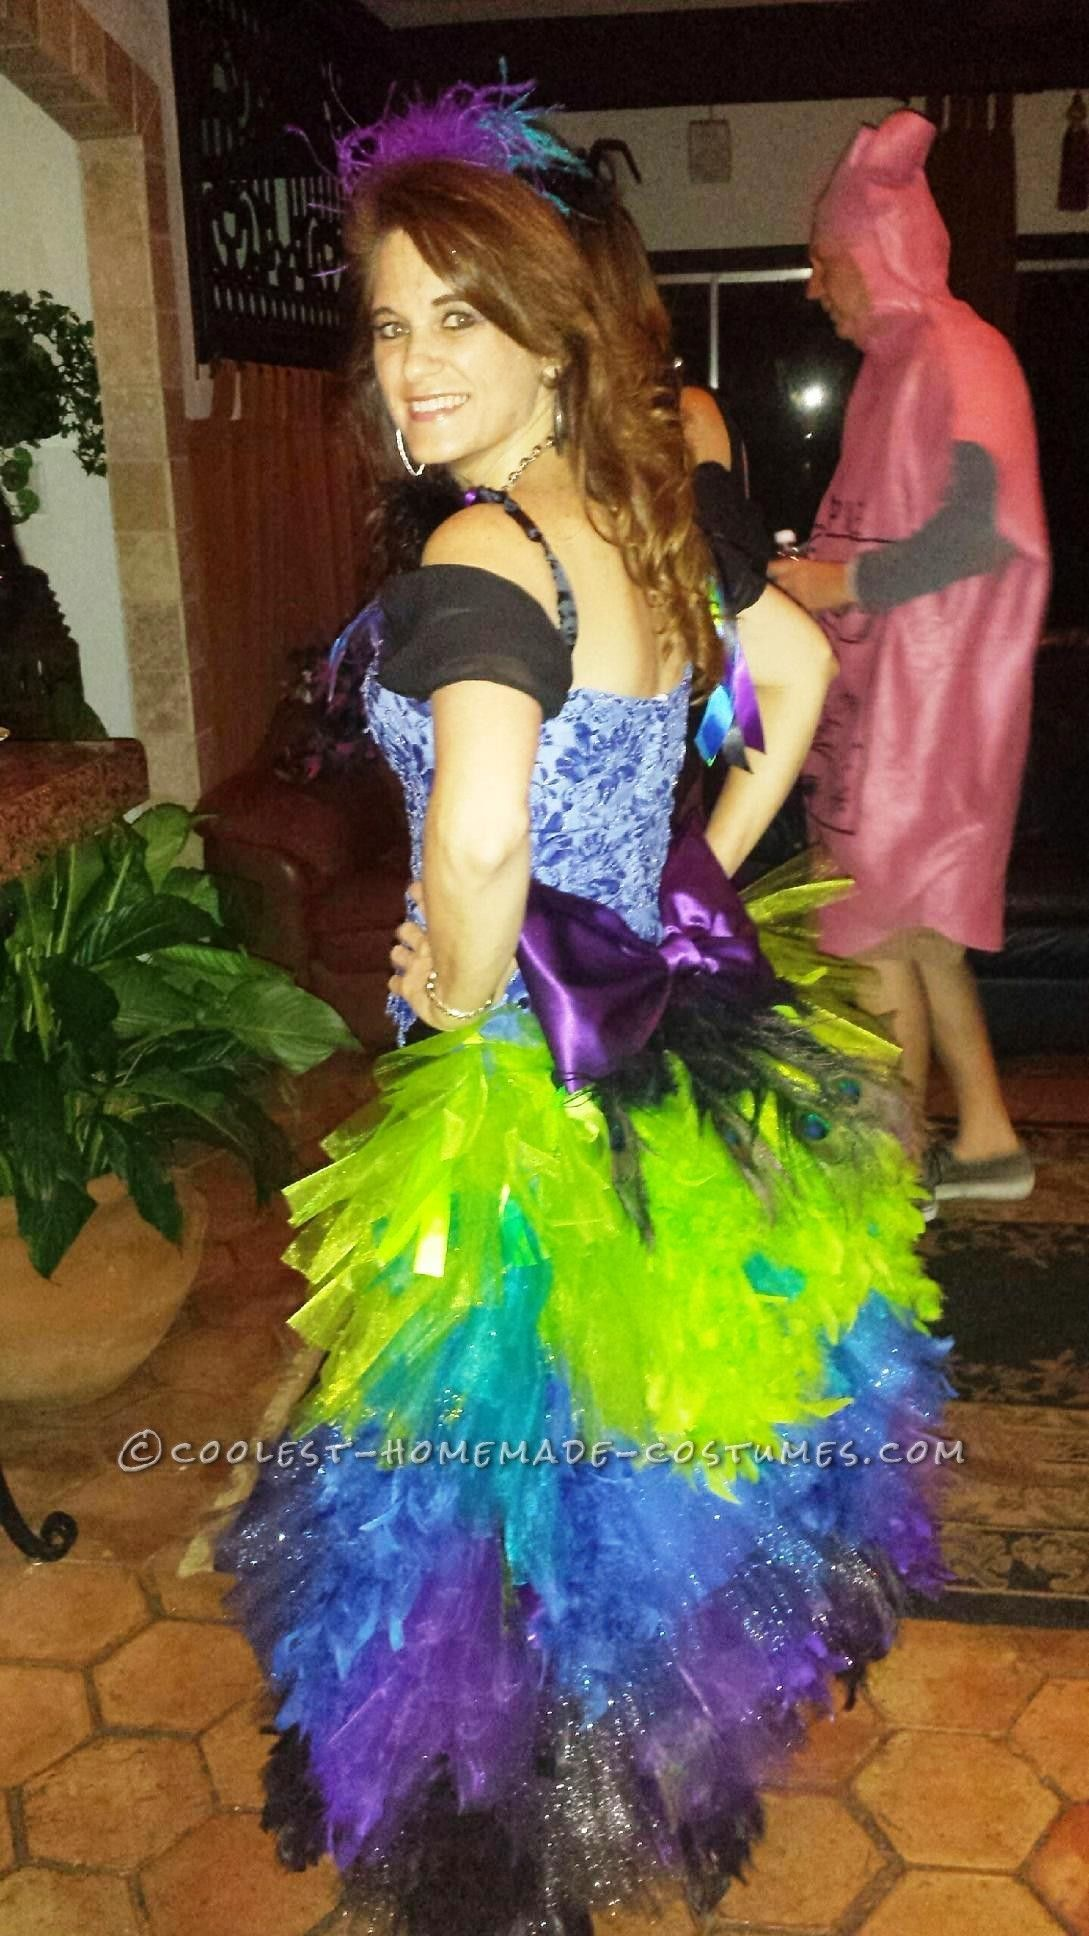 Wedding dress turned to colorful peacock costume halloween costume